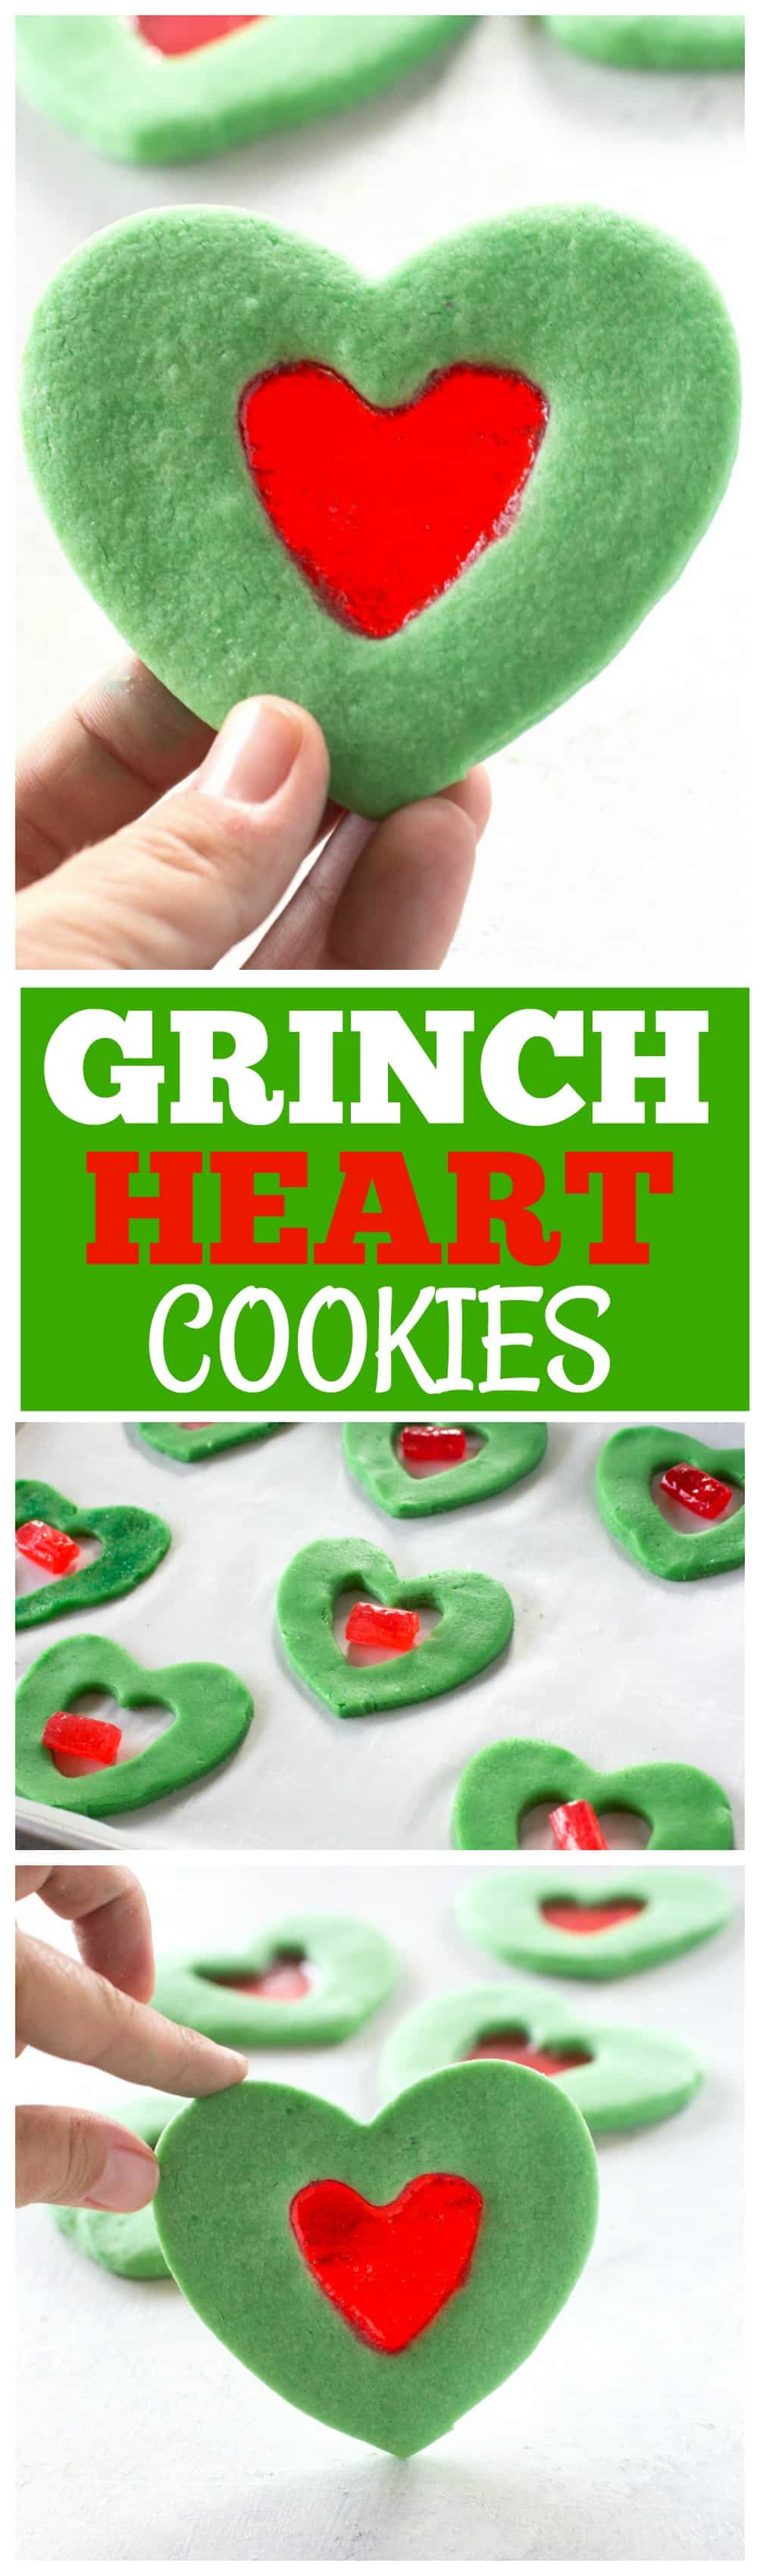 These Grinch Heart Cookies are magical little treats that you can make at Christmas with your kids. Sugar cookies dyed green with a stained glass red heart in the middle.